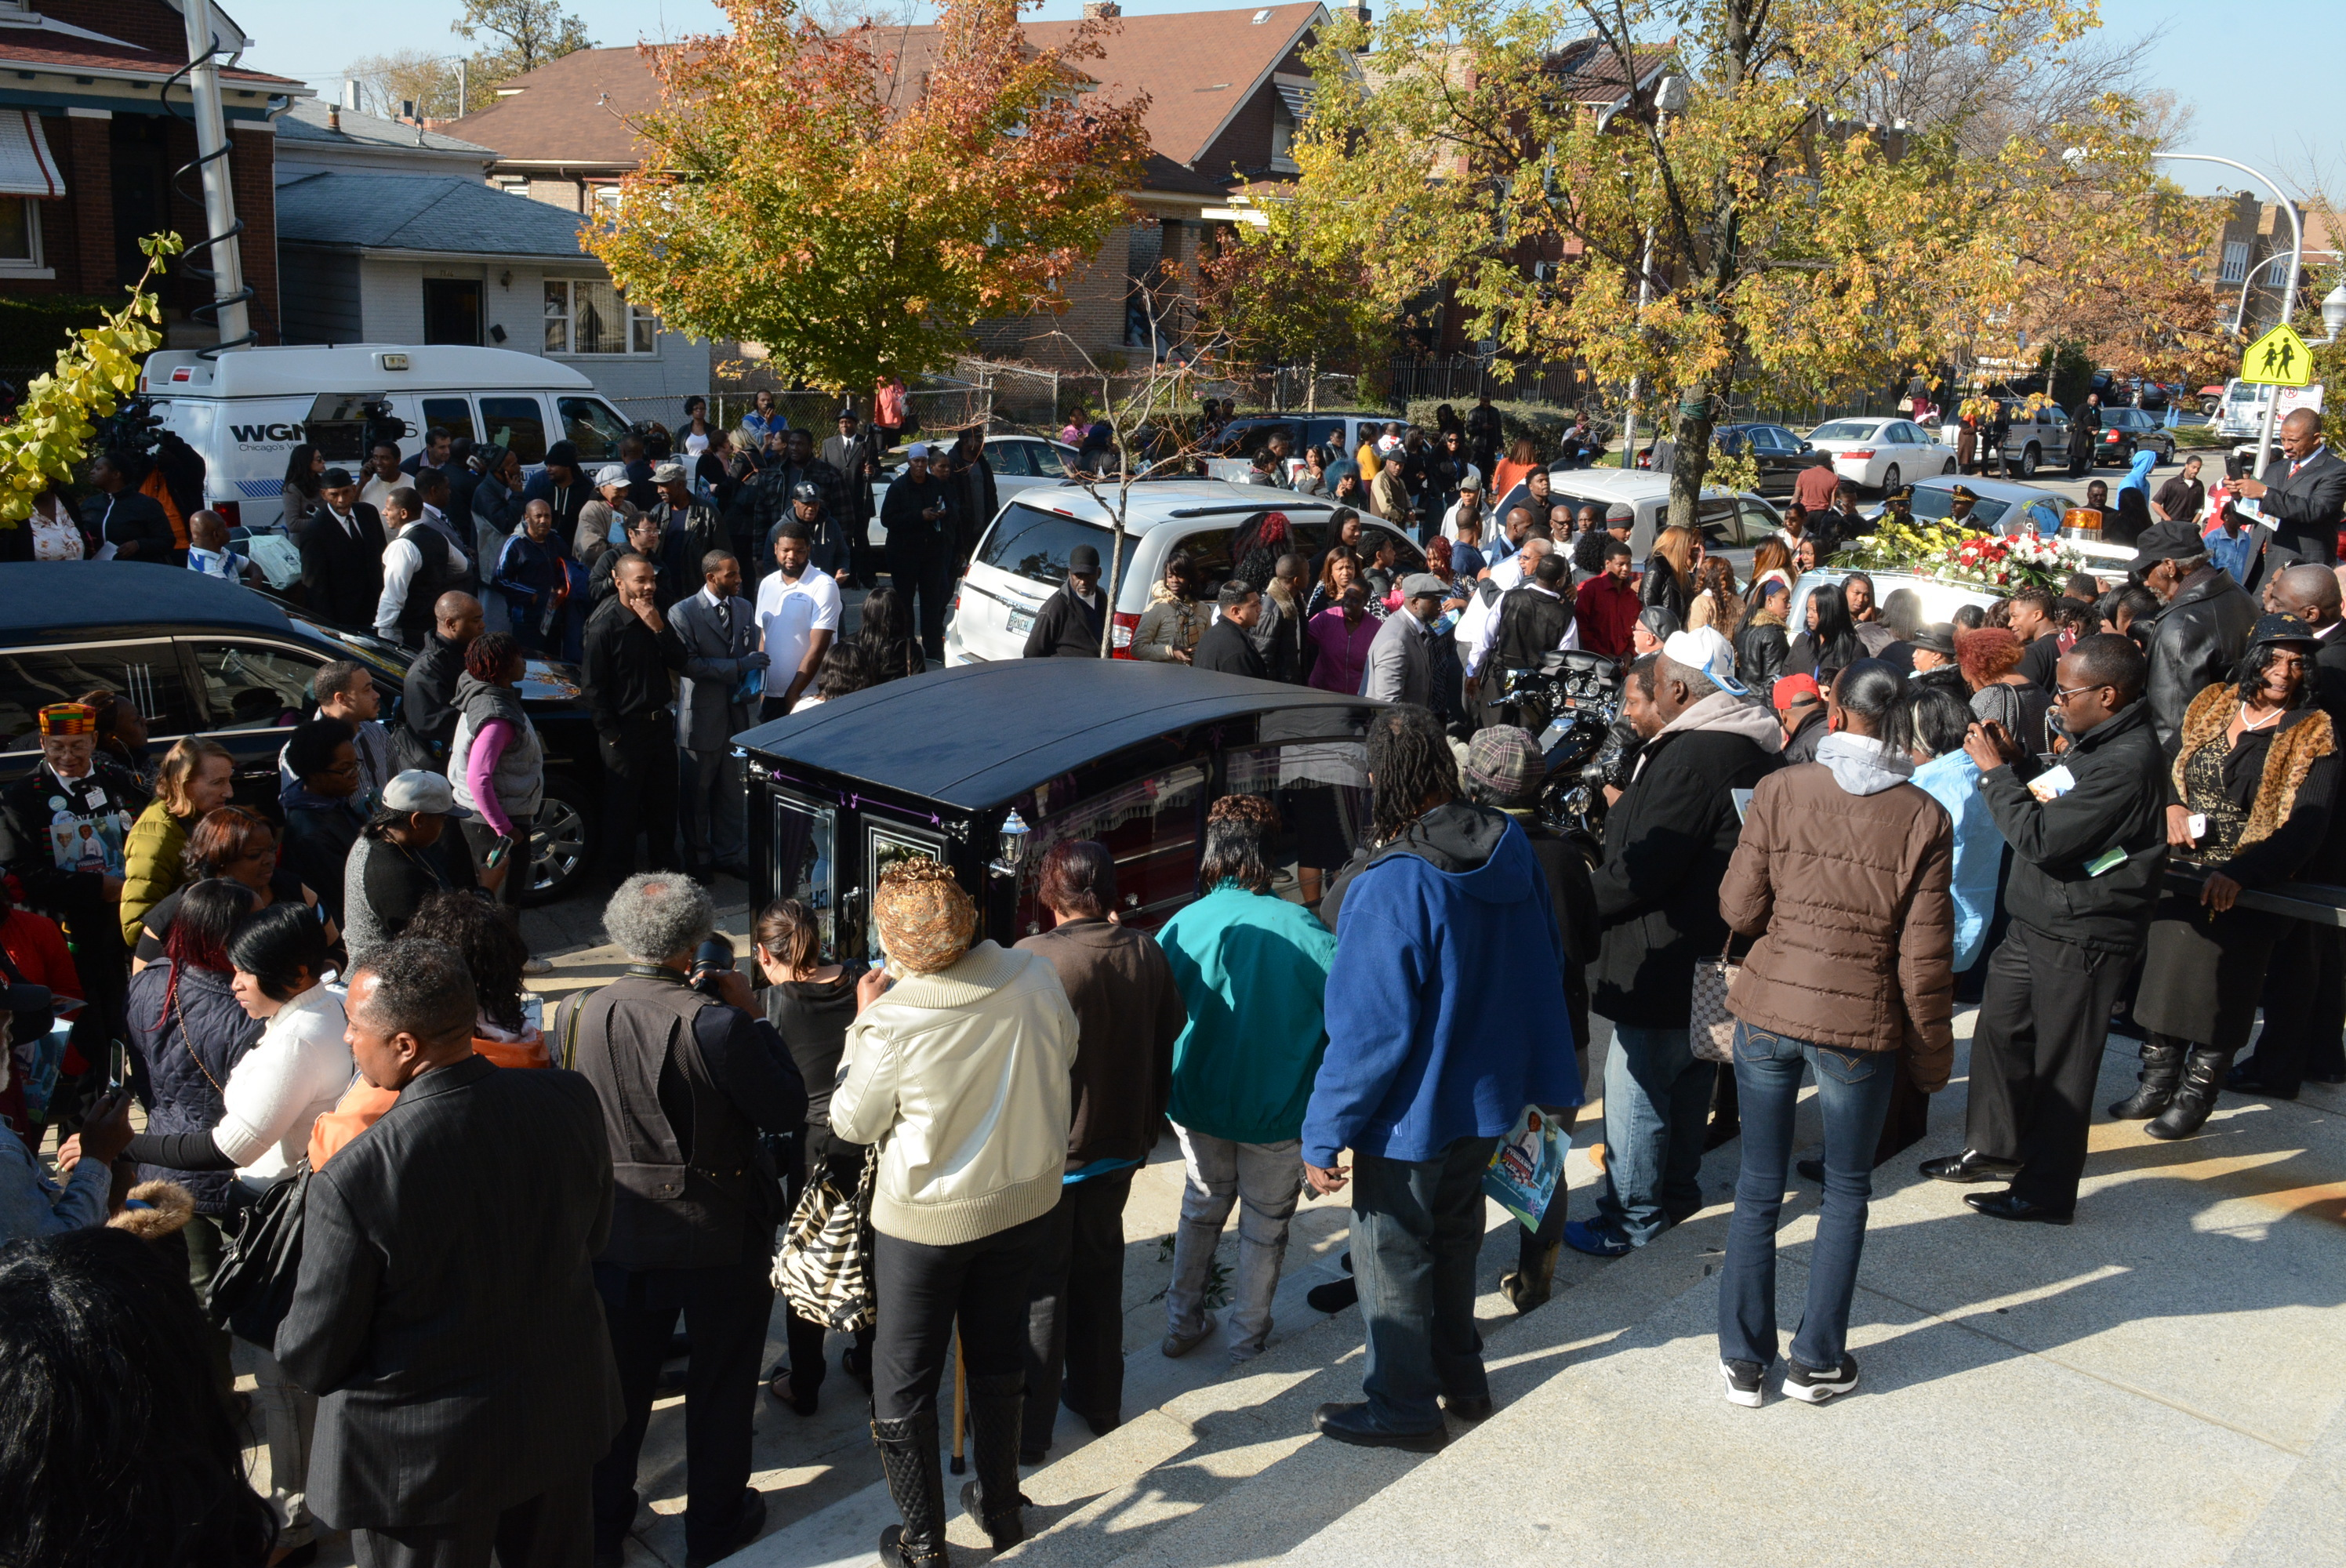 The crowd at the funeral for Tyshawn Lee at St. Sabina Church in Auburn Gresham, Nov. 10, 2015.